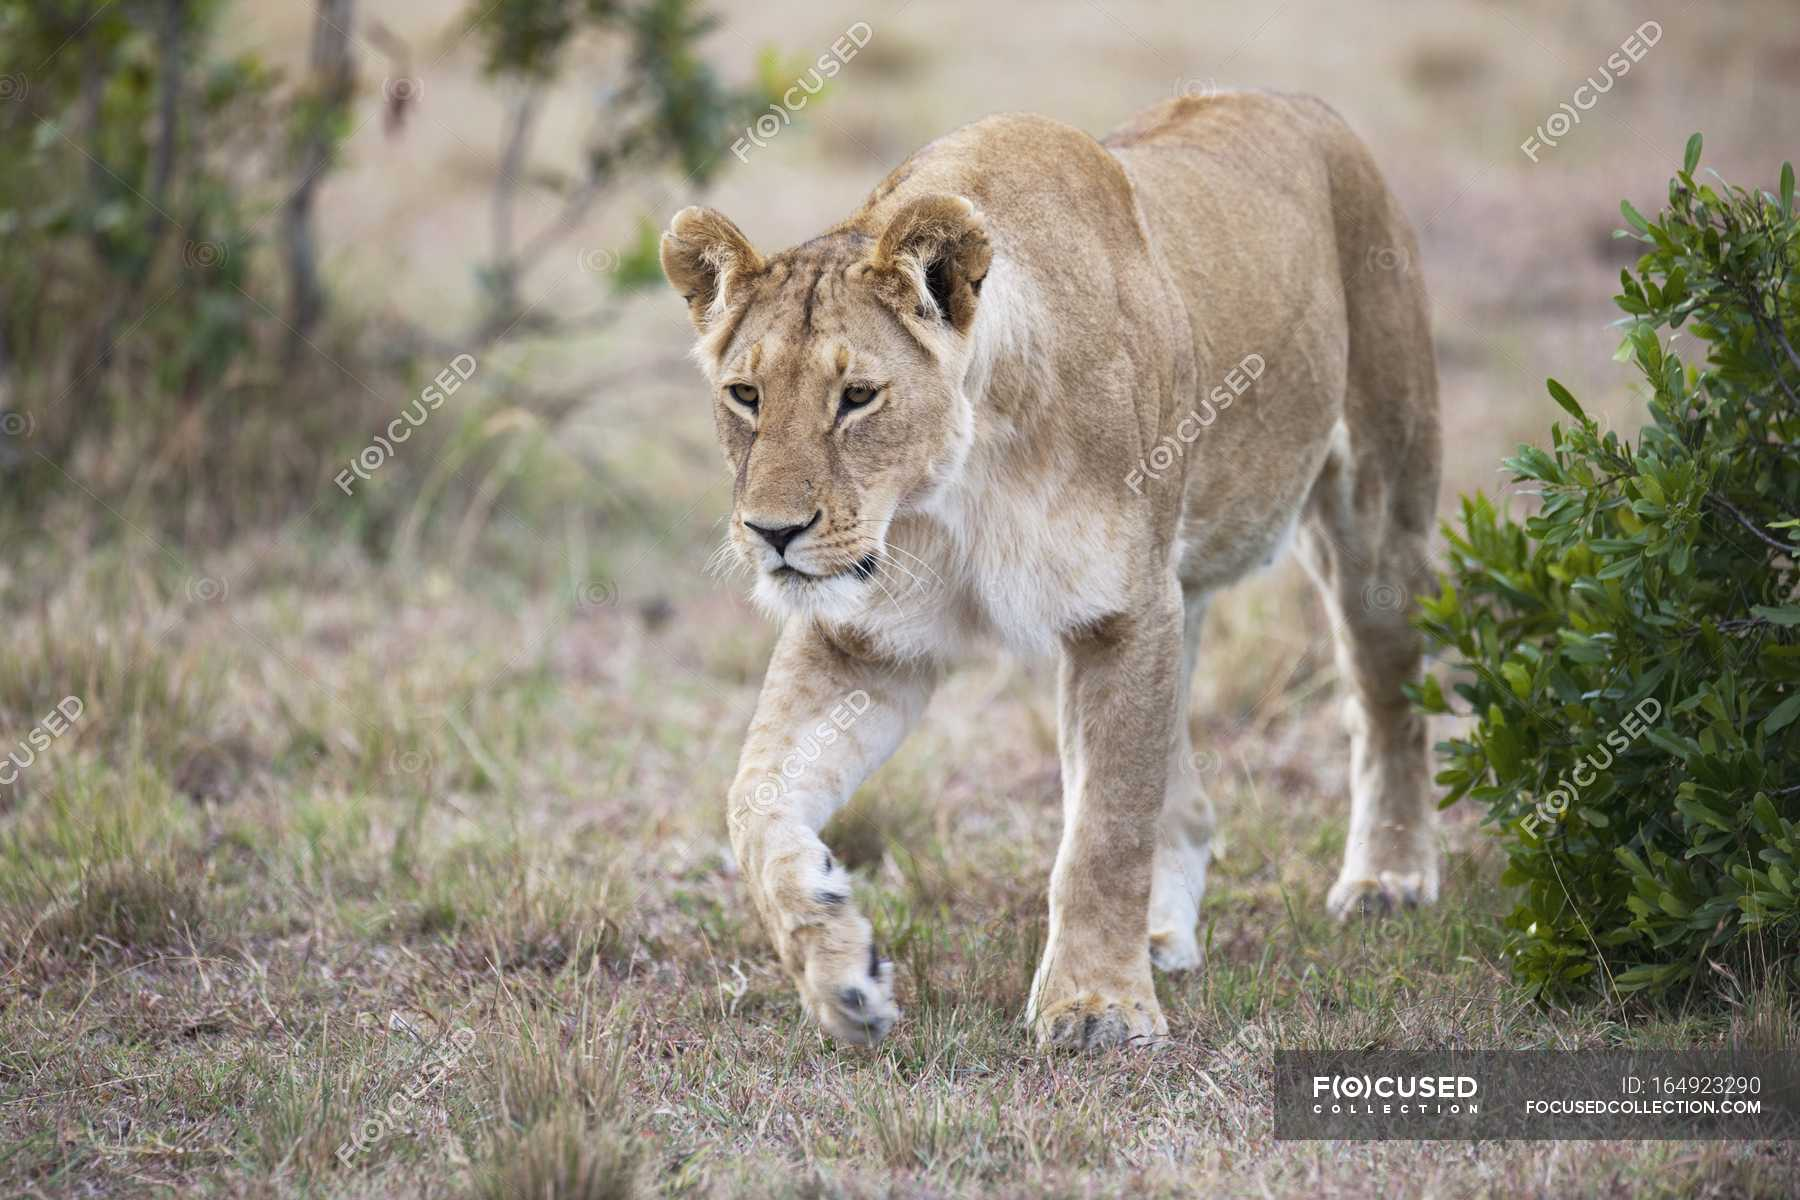 Lioness walking over ground — Stock Photo   #164923290